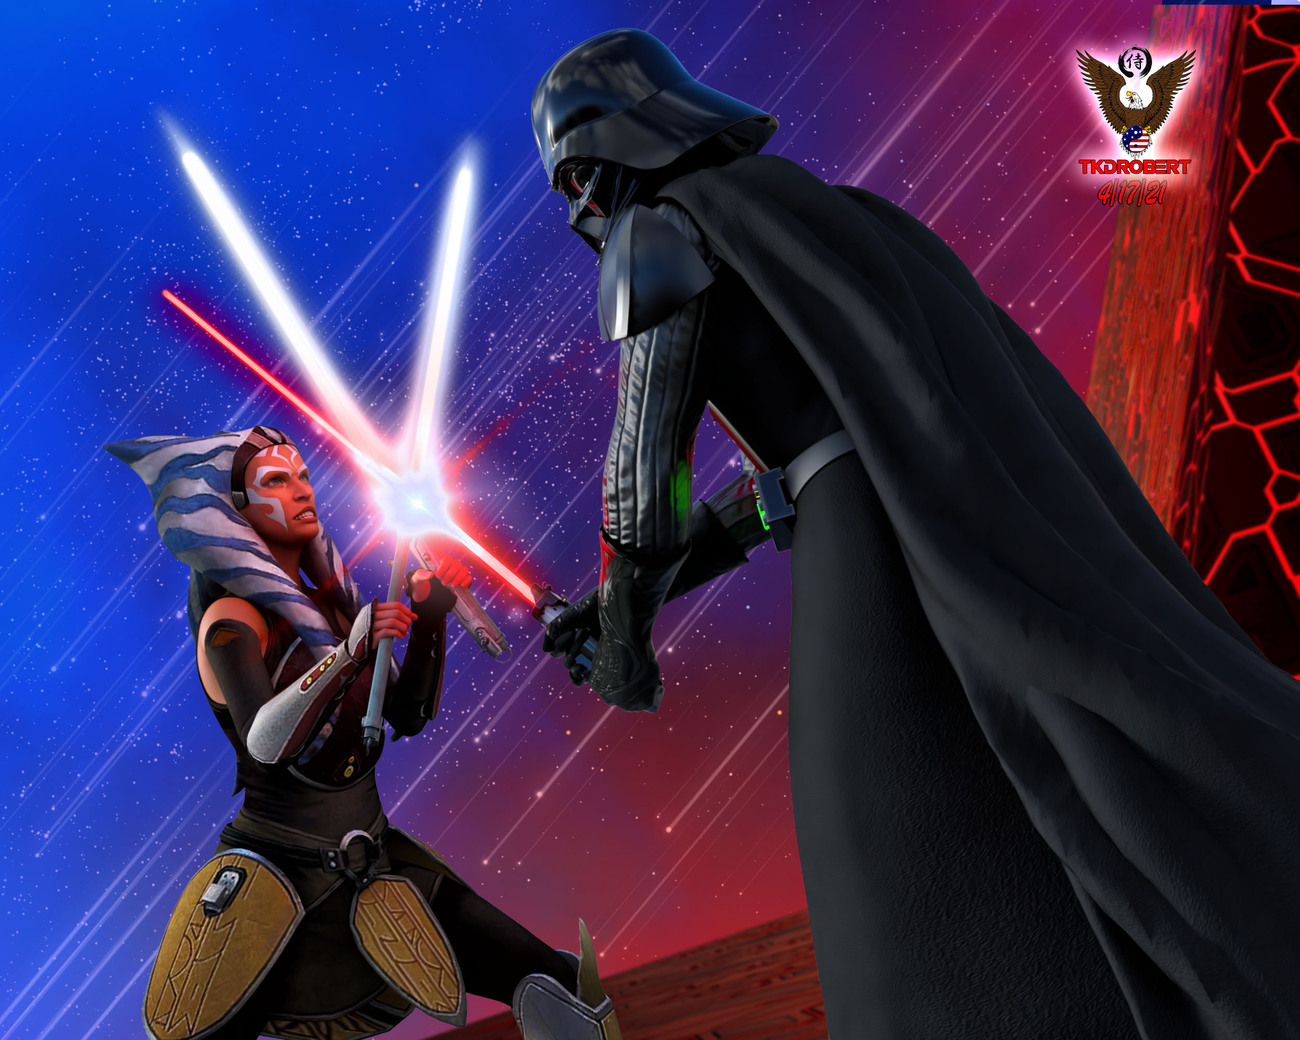 Ahsoka vs Darth Vader by tkdrobert